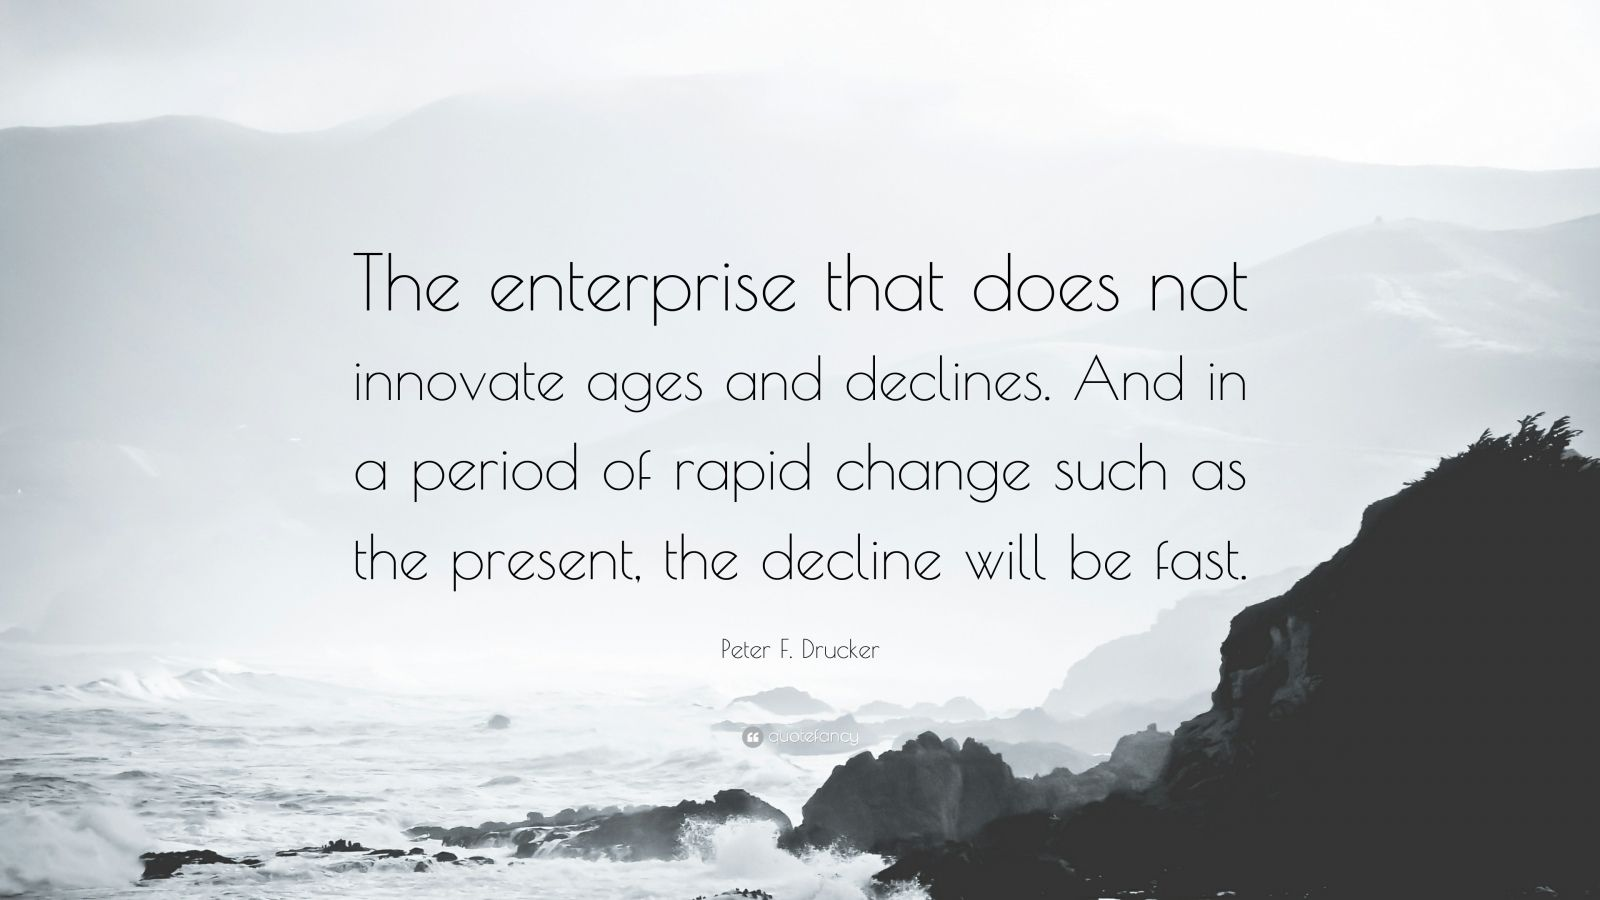 """Peter F. Drucker Quote: """"The enterprise that does not innovate ages and declines. And in a period of rapid change such as the present, the decline will be fast."""""""